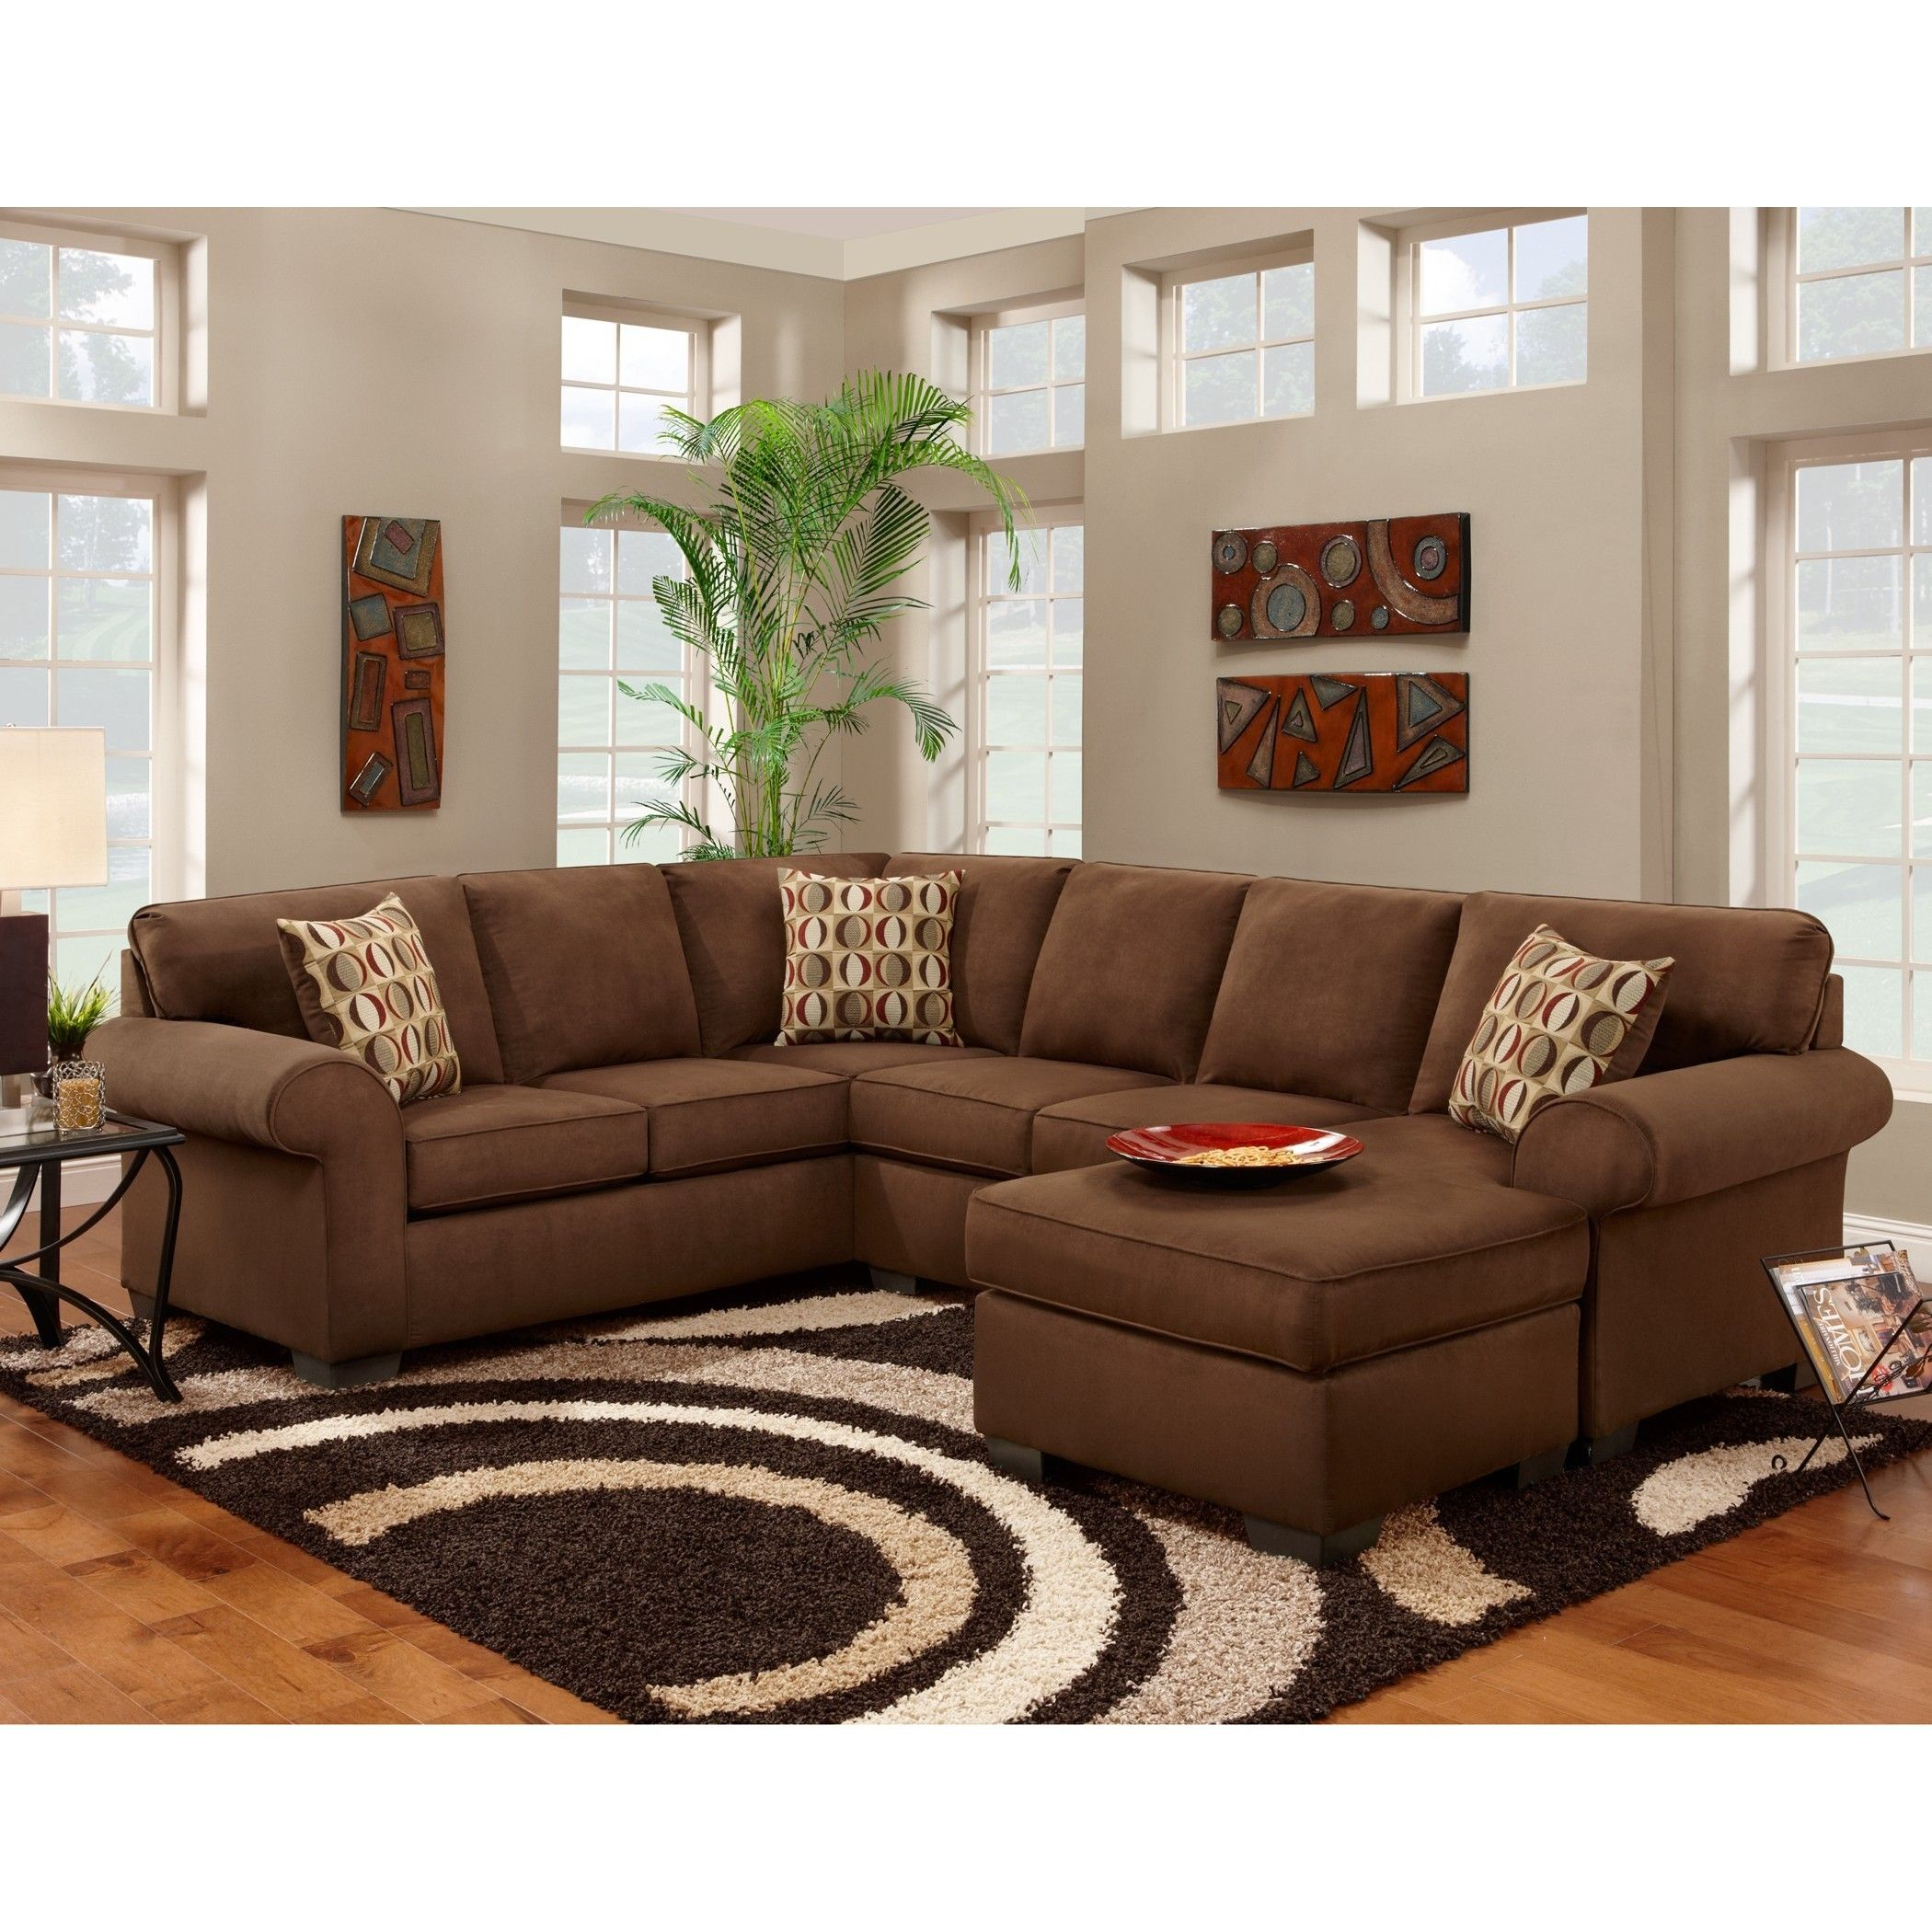 Trendz Cree Chocolate Brown Polyester blend Sectional Chaise